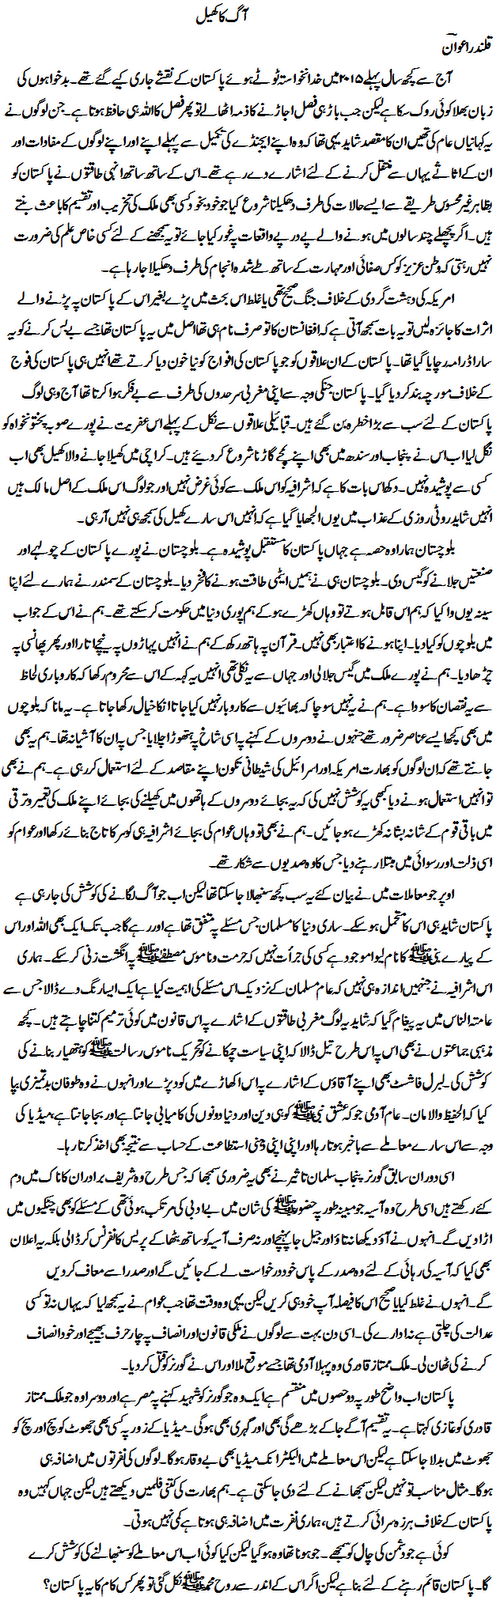 Qalandar Awan columns, Challenges to Pakistan